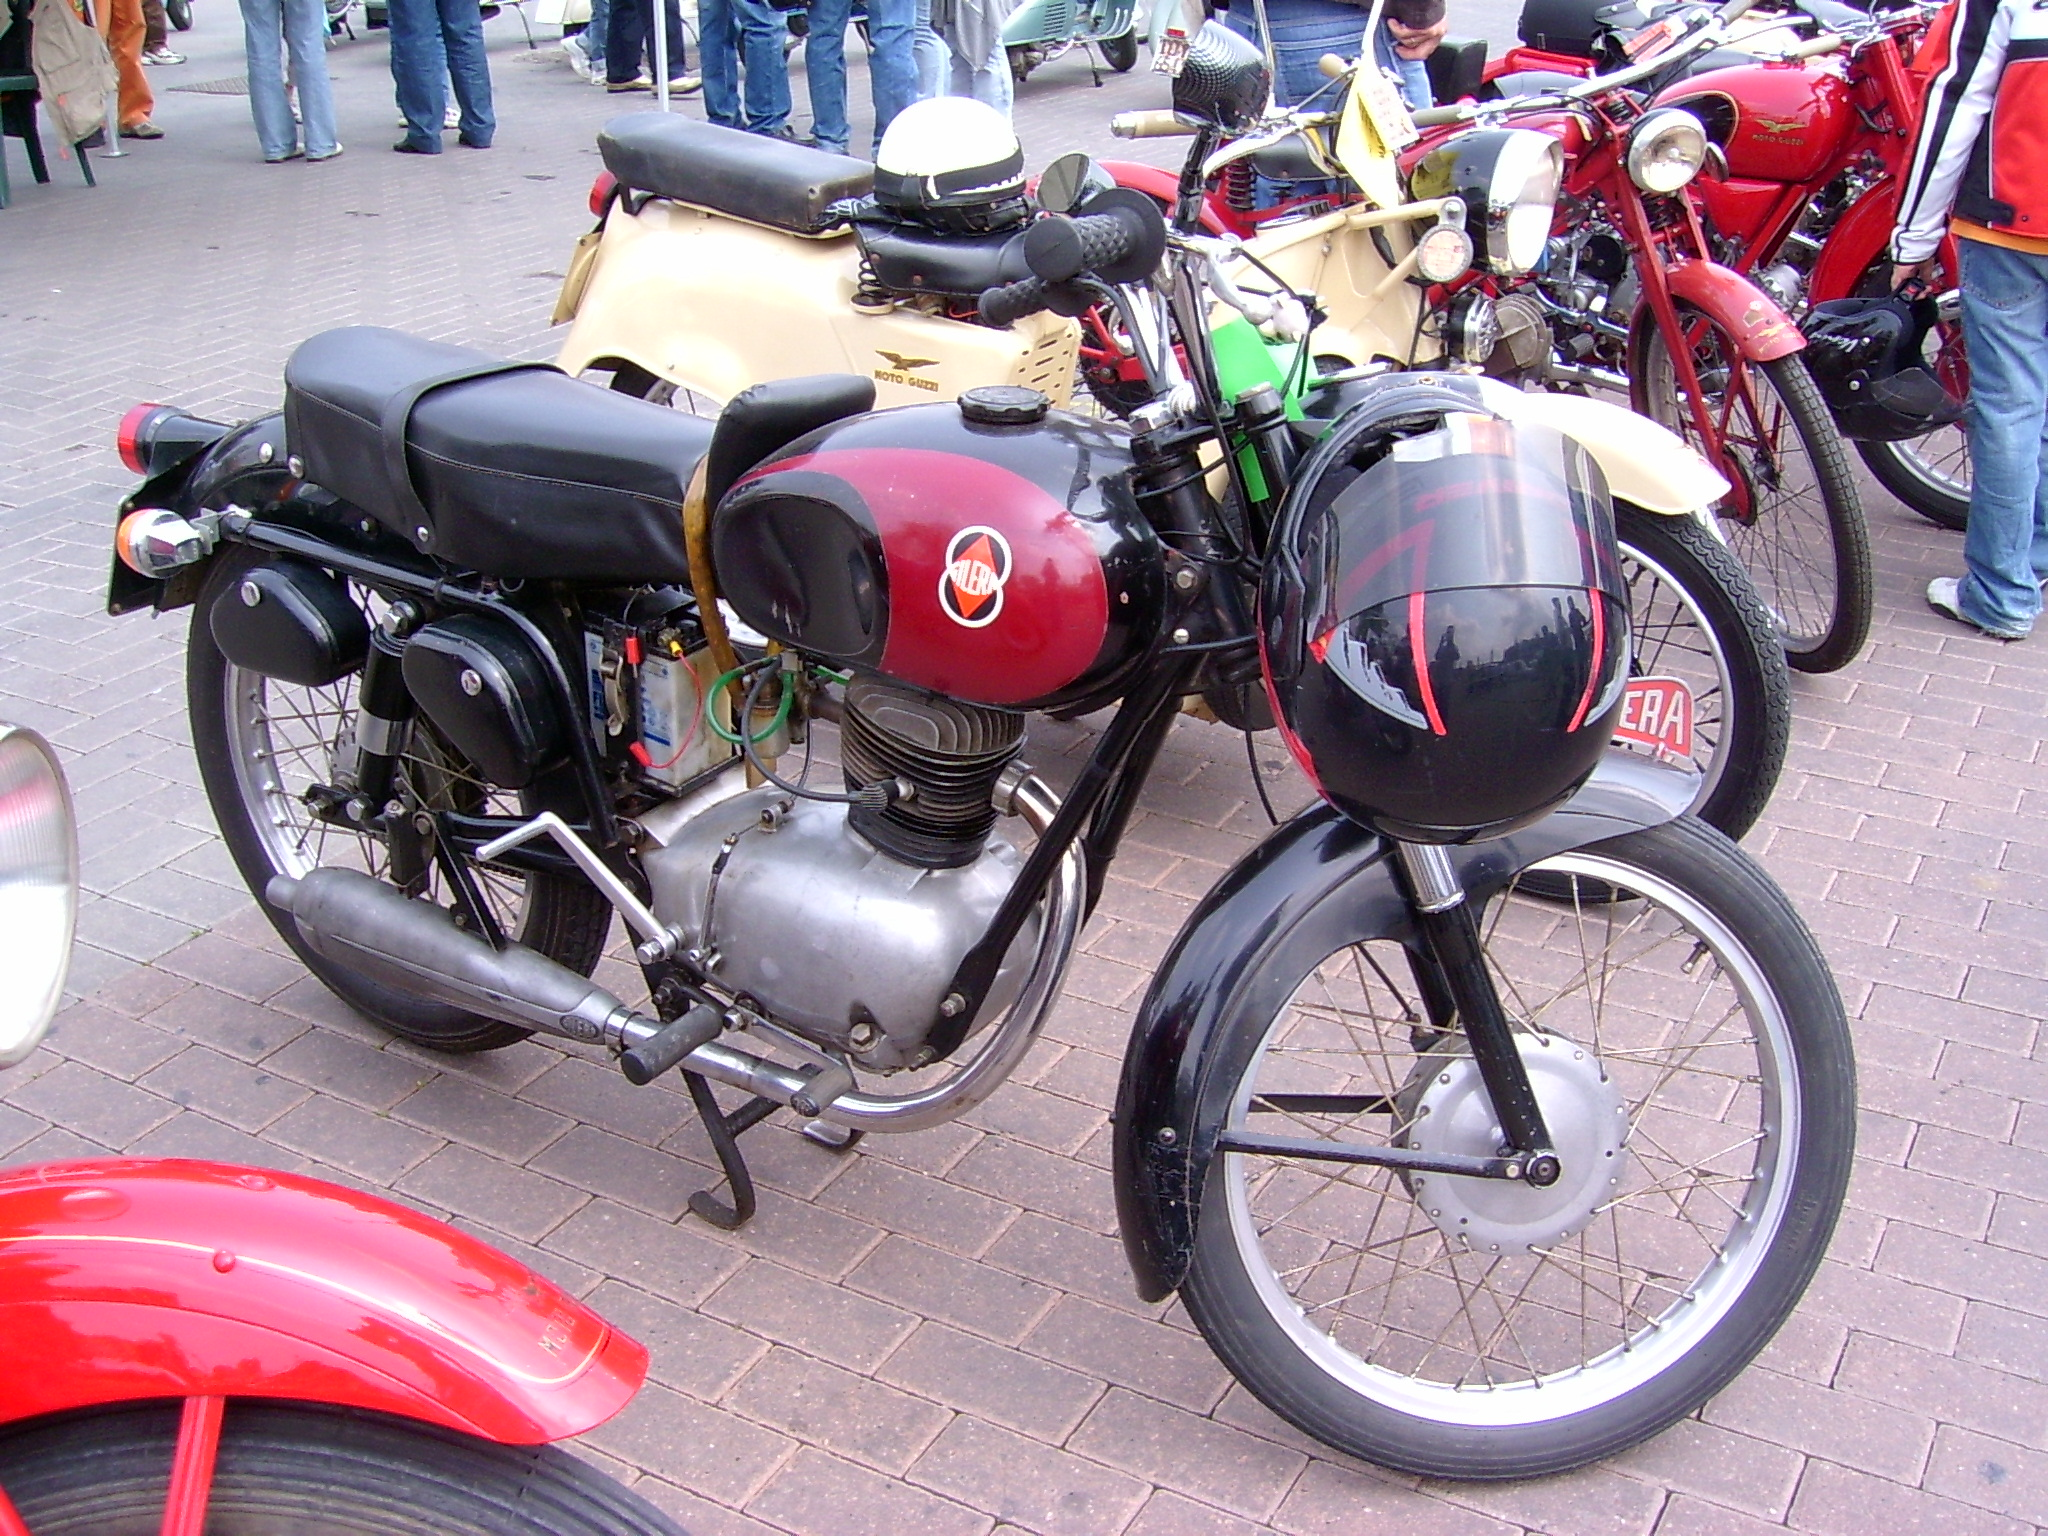 Old_Gilera_motorcycle.jpg (2048×1536)